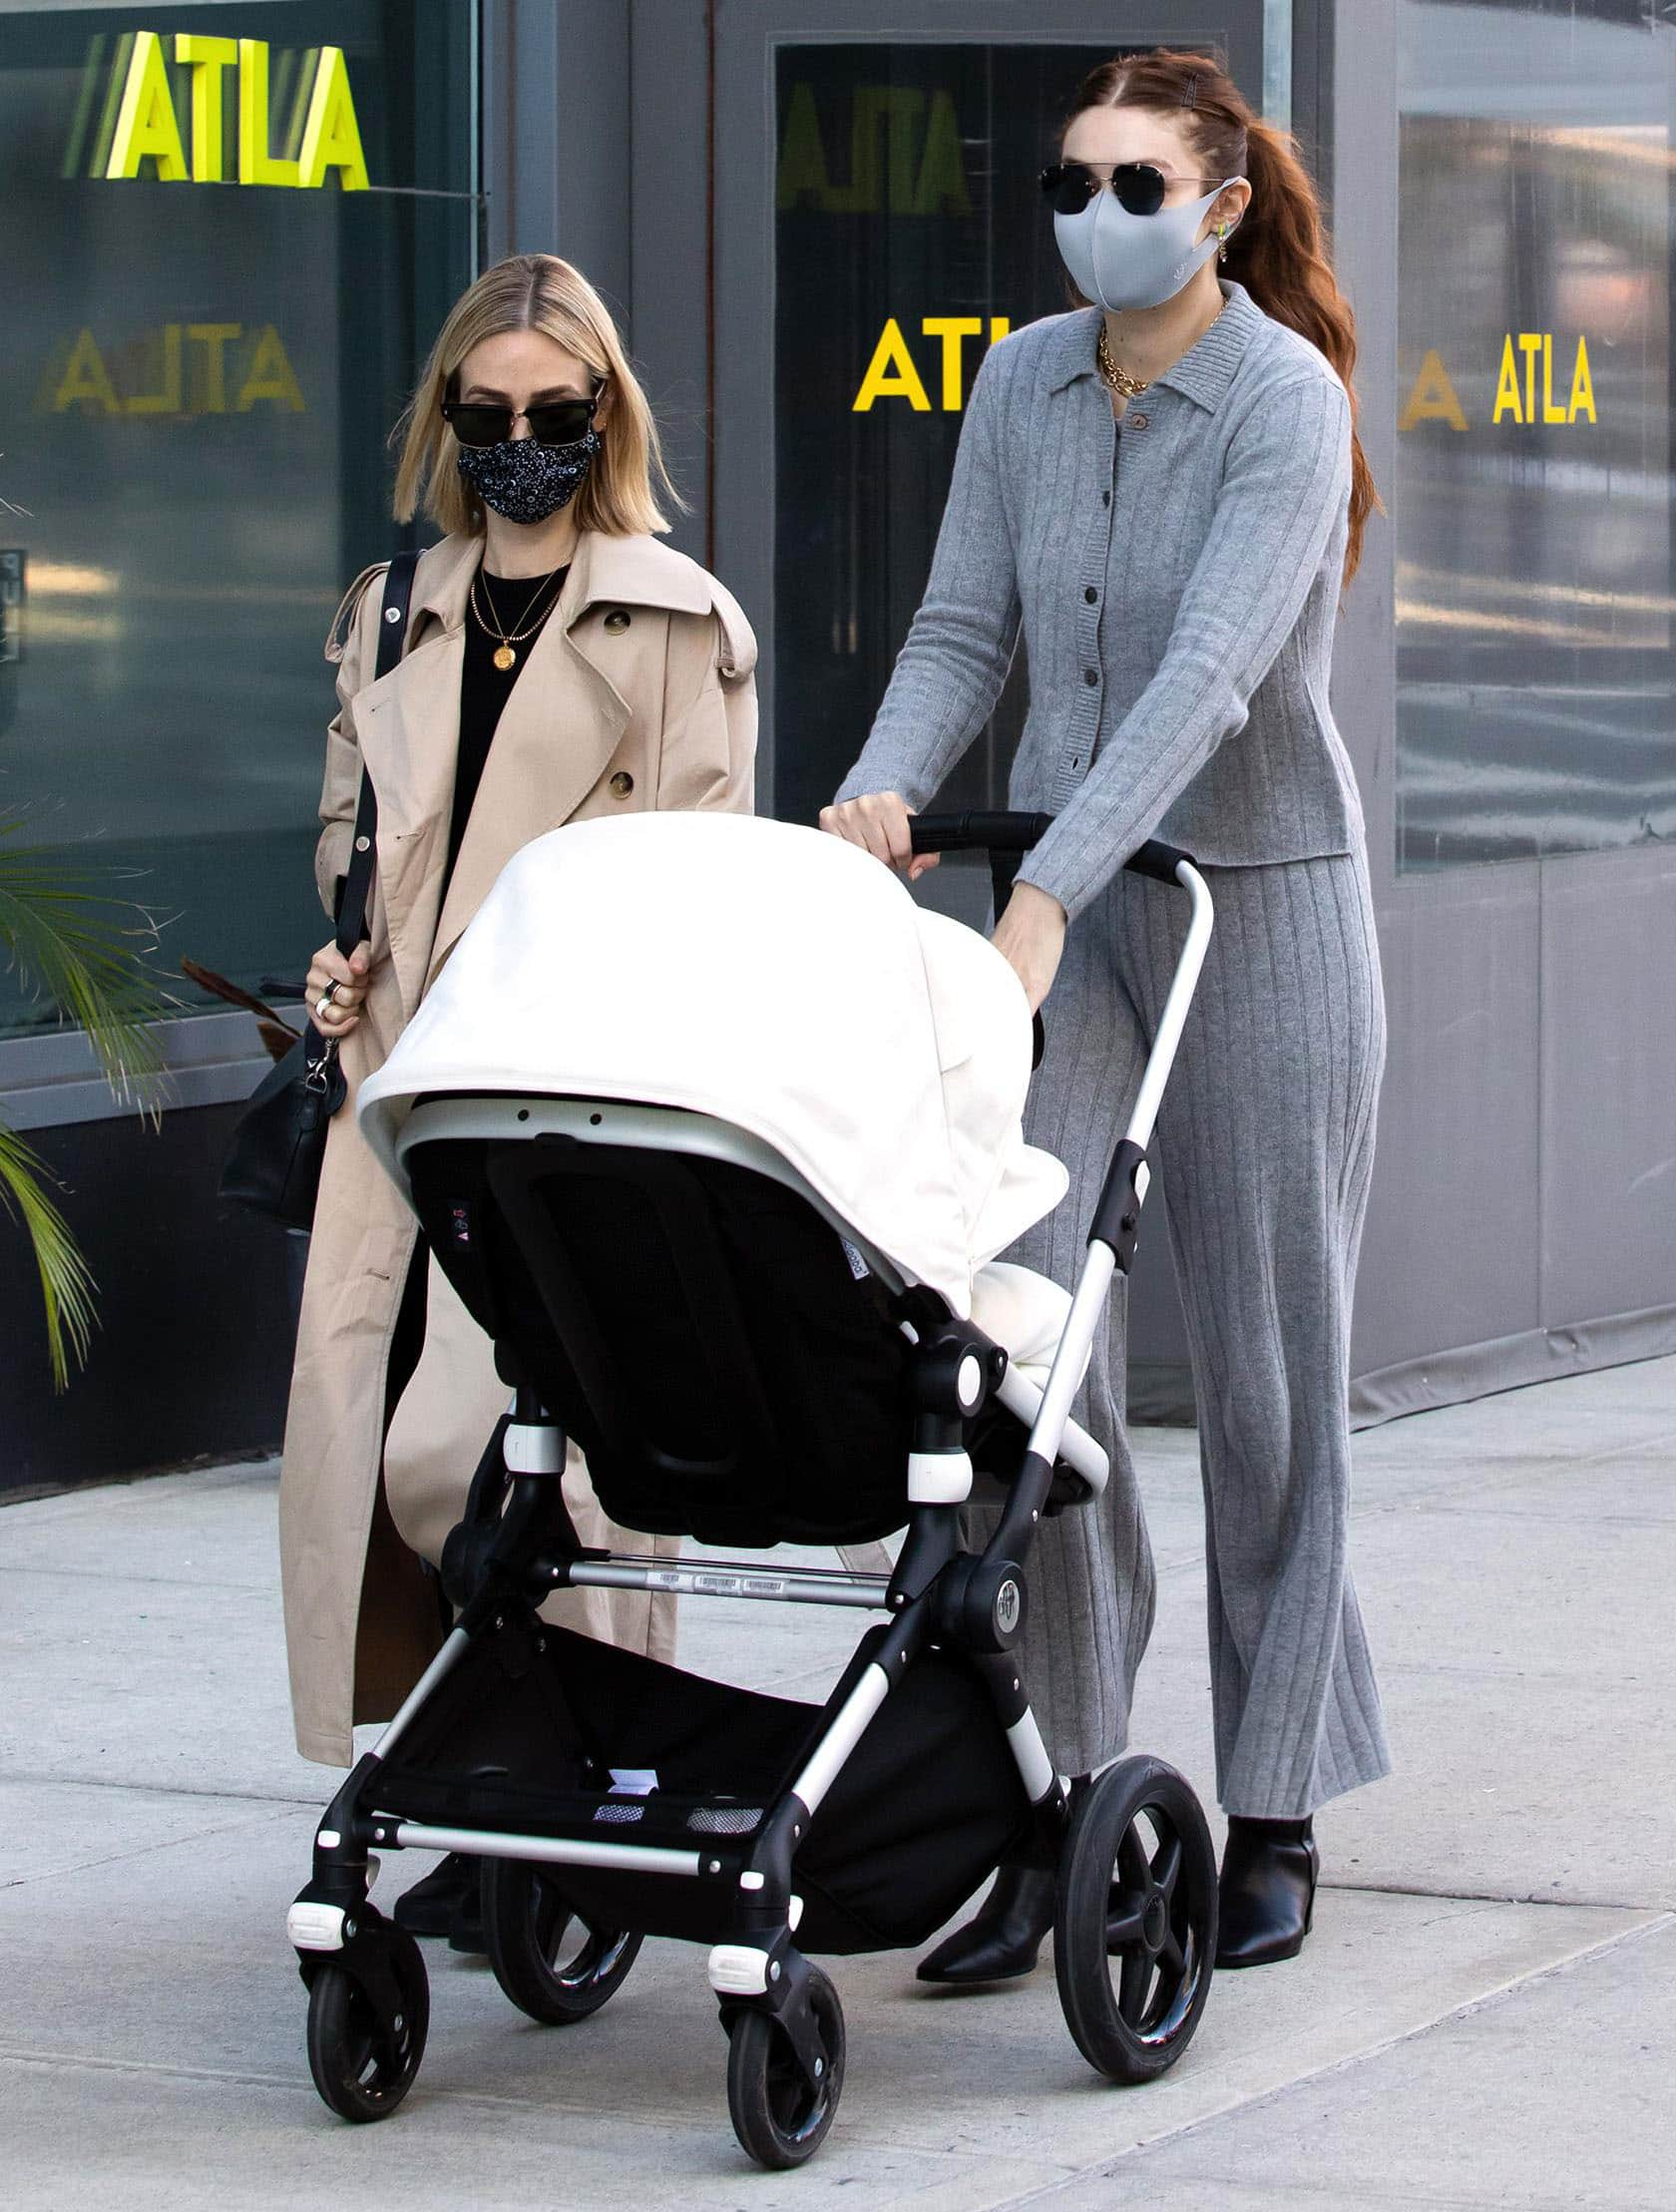 Gigi Hadid goes braless in Public Habit cashmere cardigan and wide-leg pants in New York City on March 29, 2021